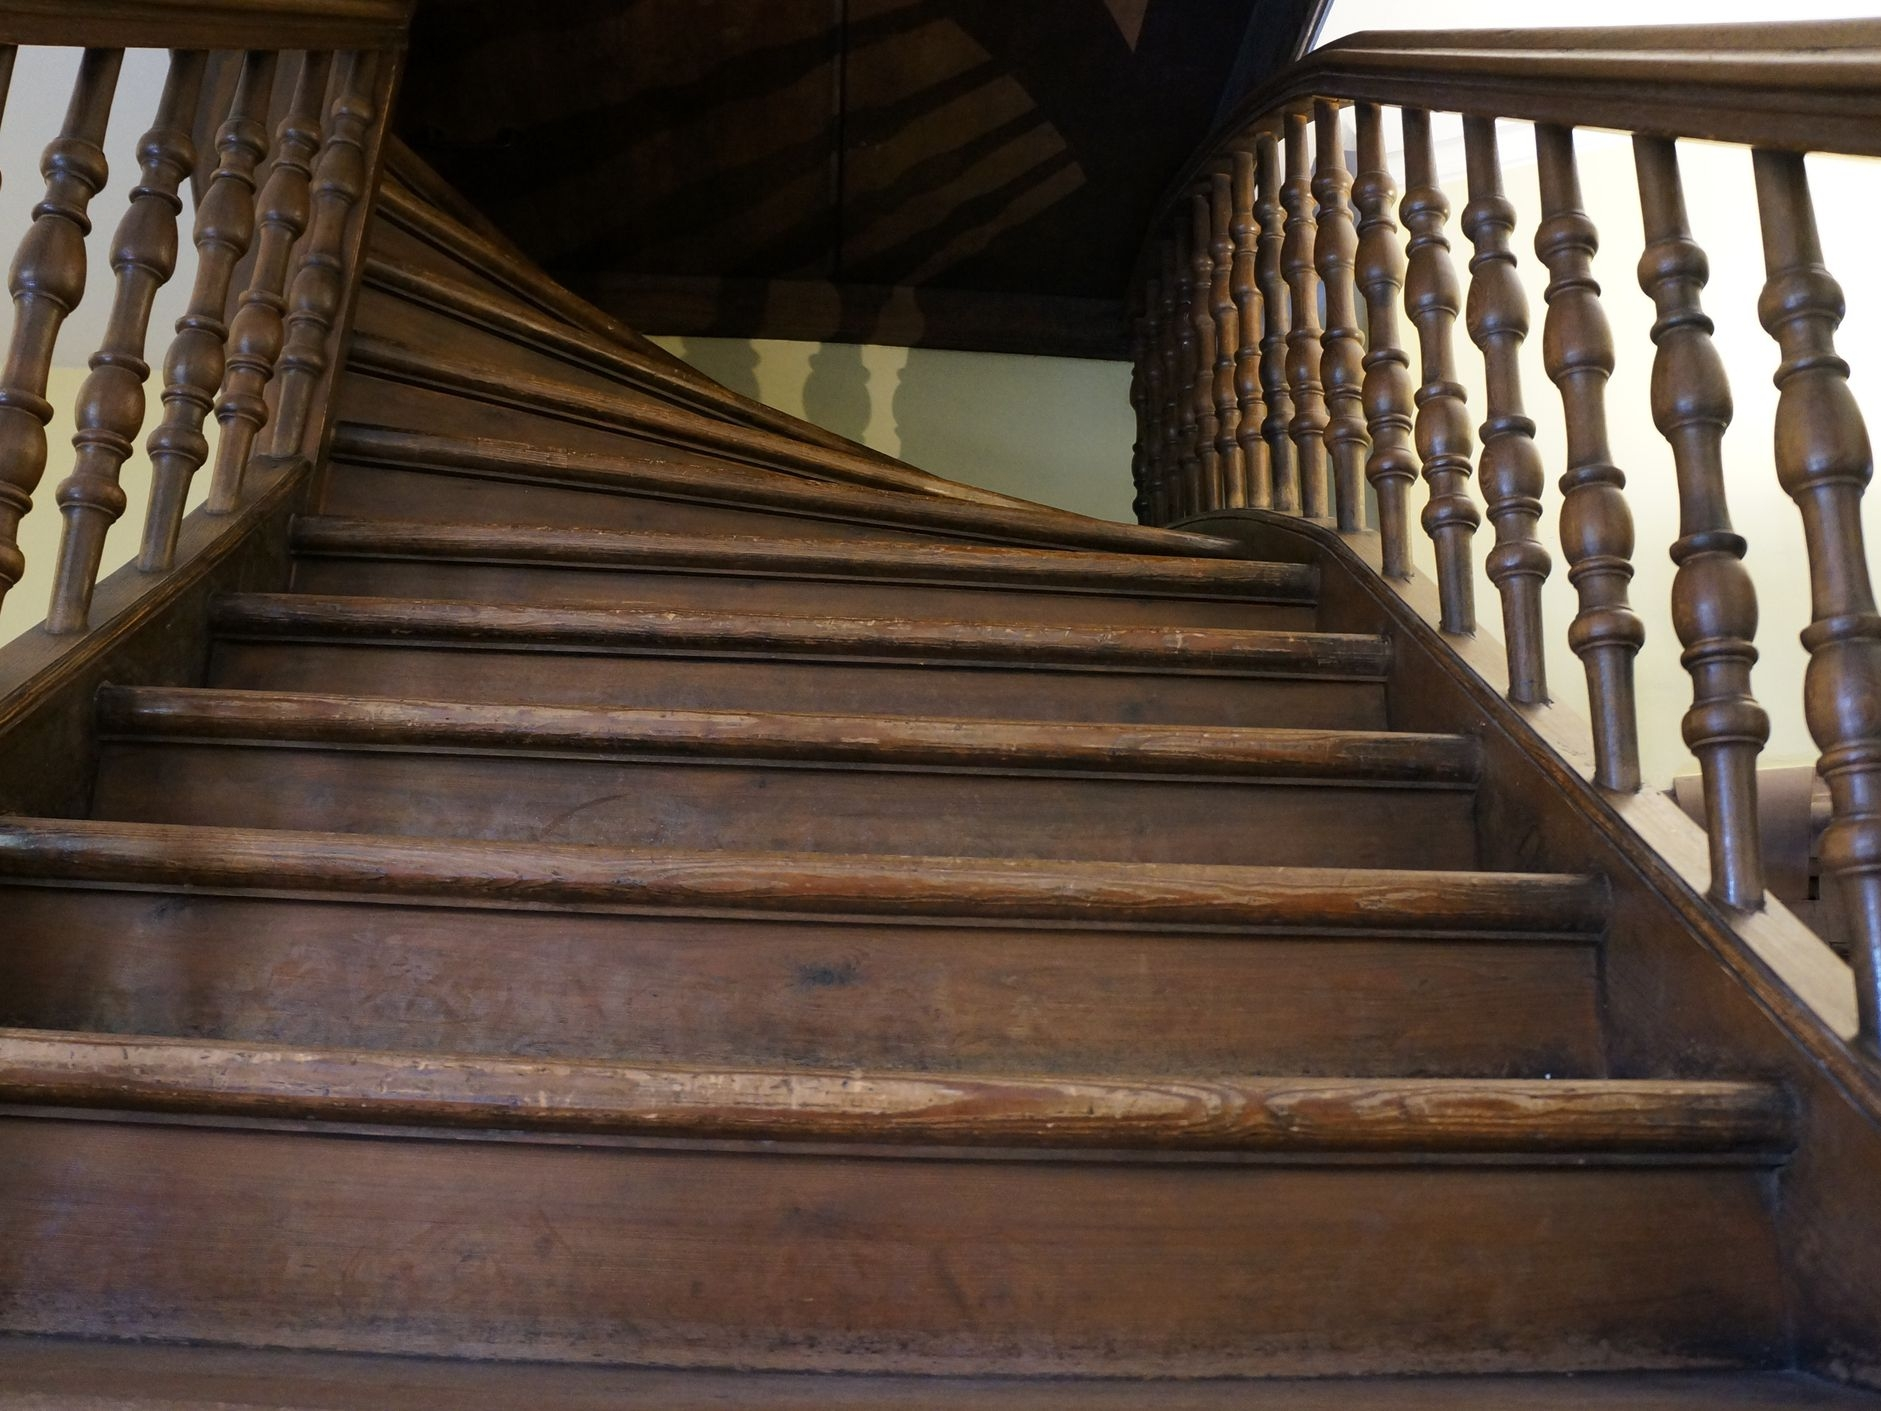 How To Fix Creaky Stairs | Best Hardwood For Stairs | Treads | Oak | Stair Tread | Stain | Laminate Flooring